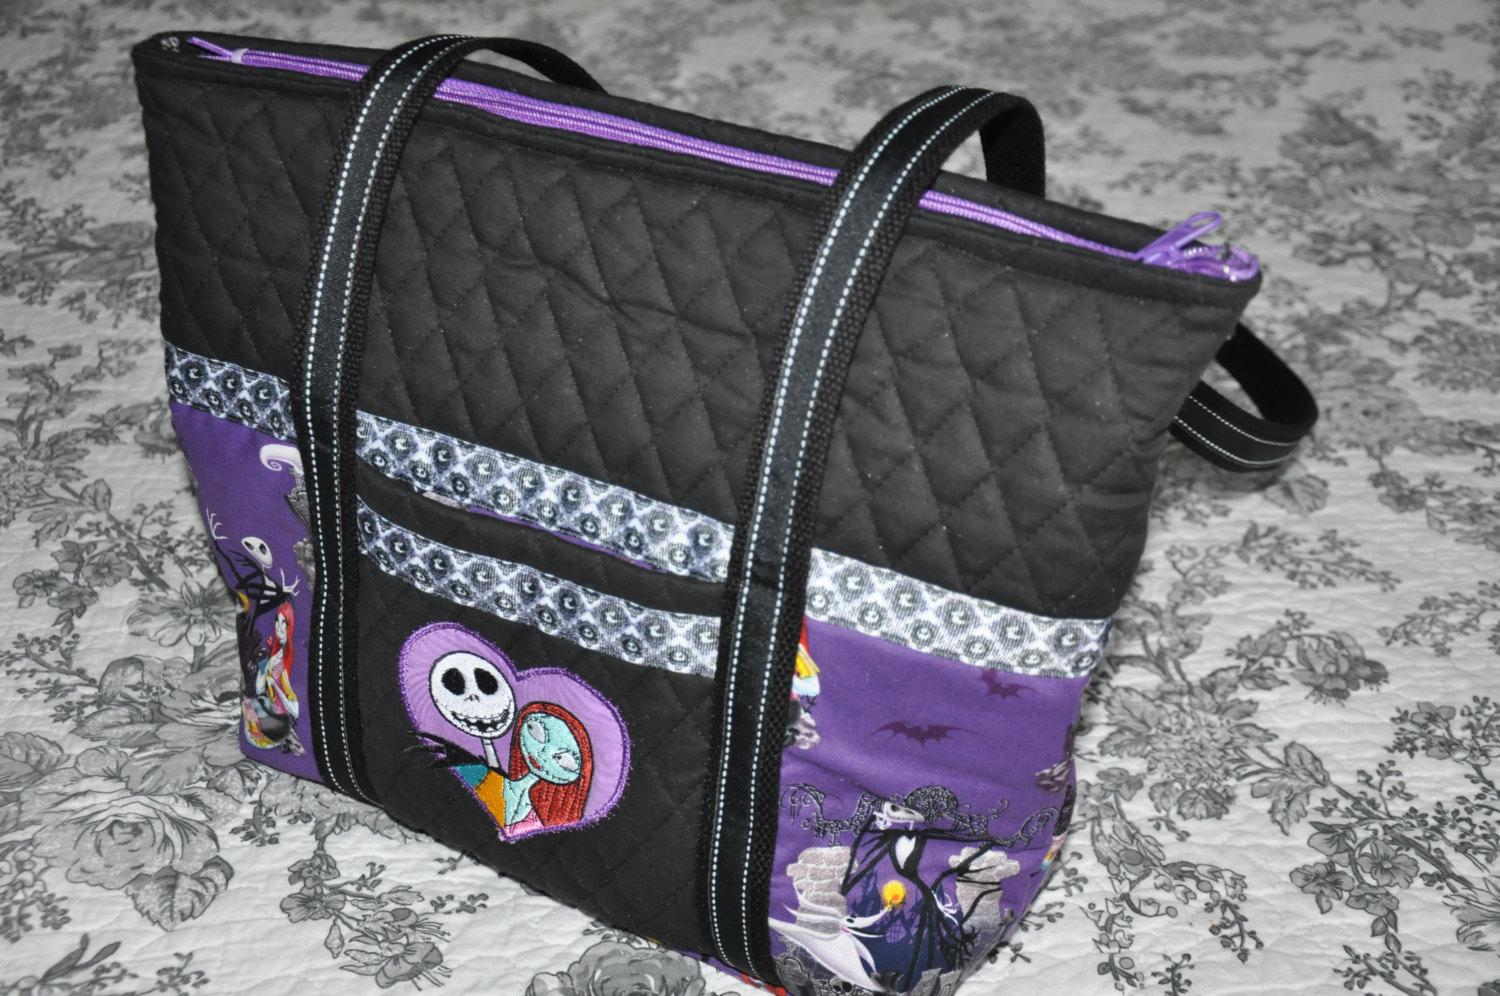 A bag with Jack and Sally from Nightmare Before Christmas design